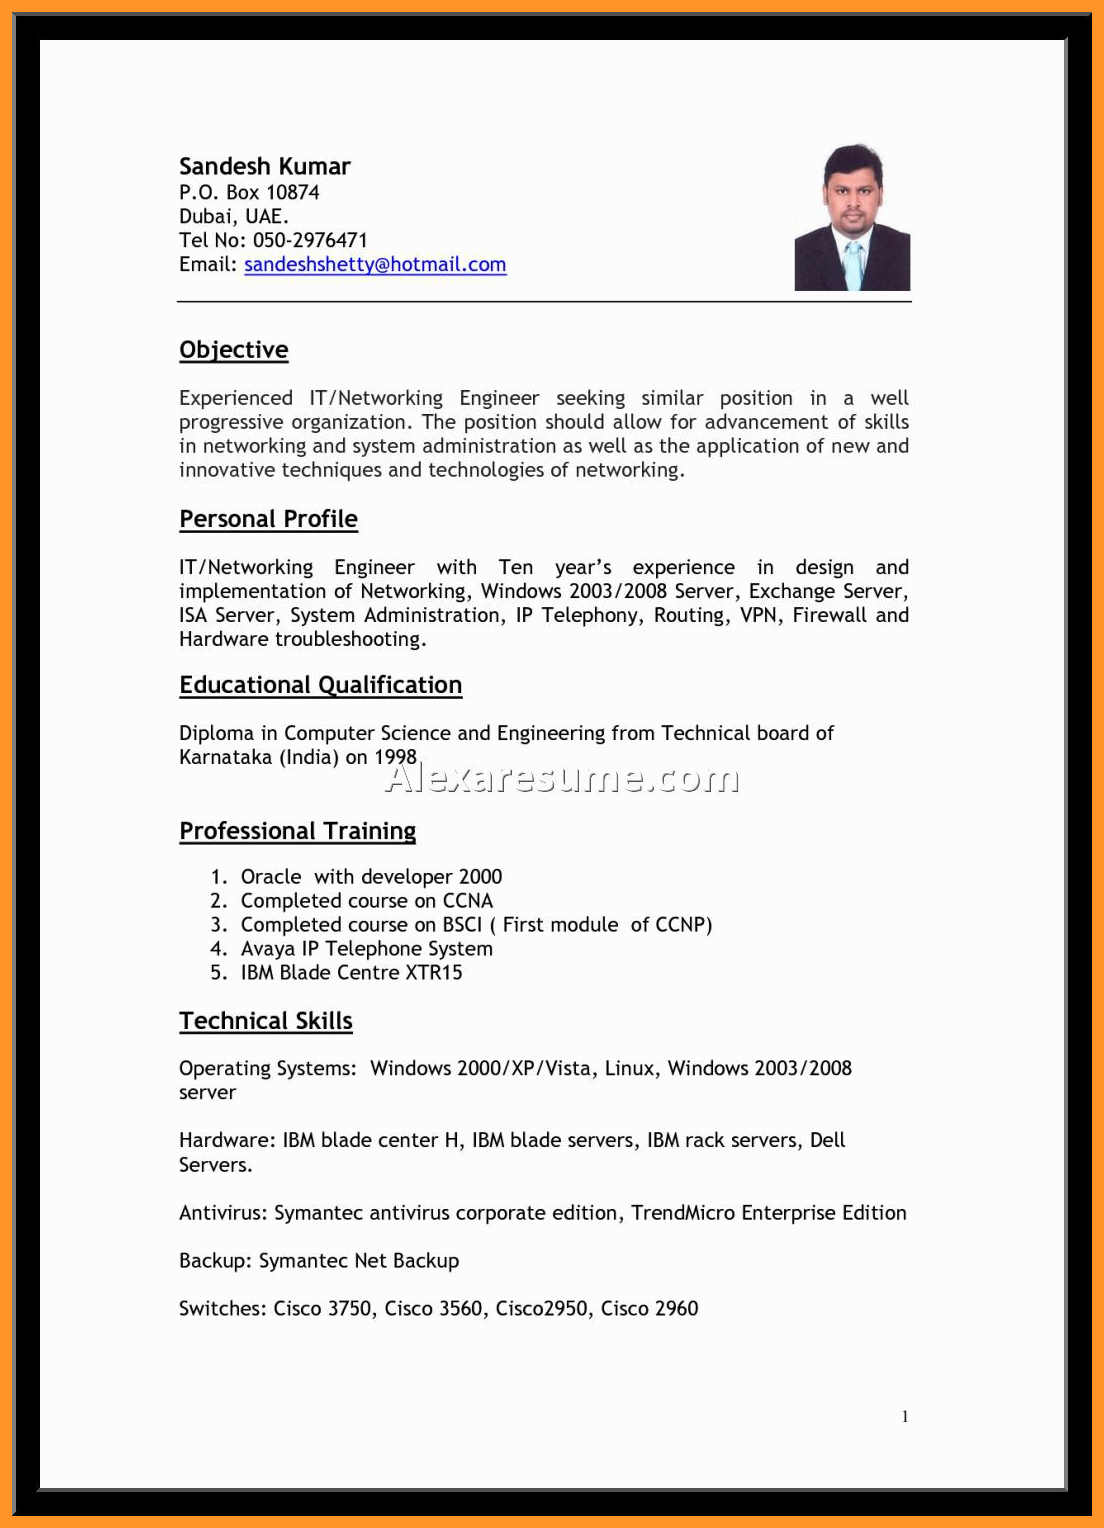 ideal resume length best examples format font size recommended standard jobsxs academic Resume Standard Font Size For Resume